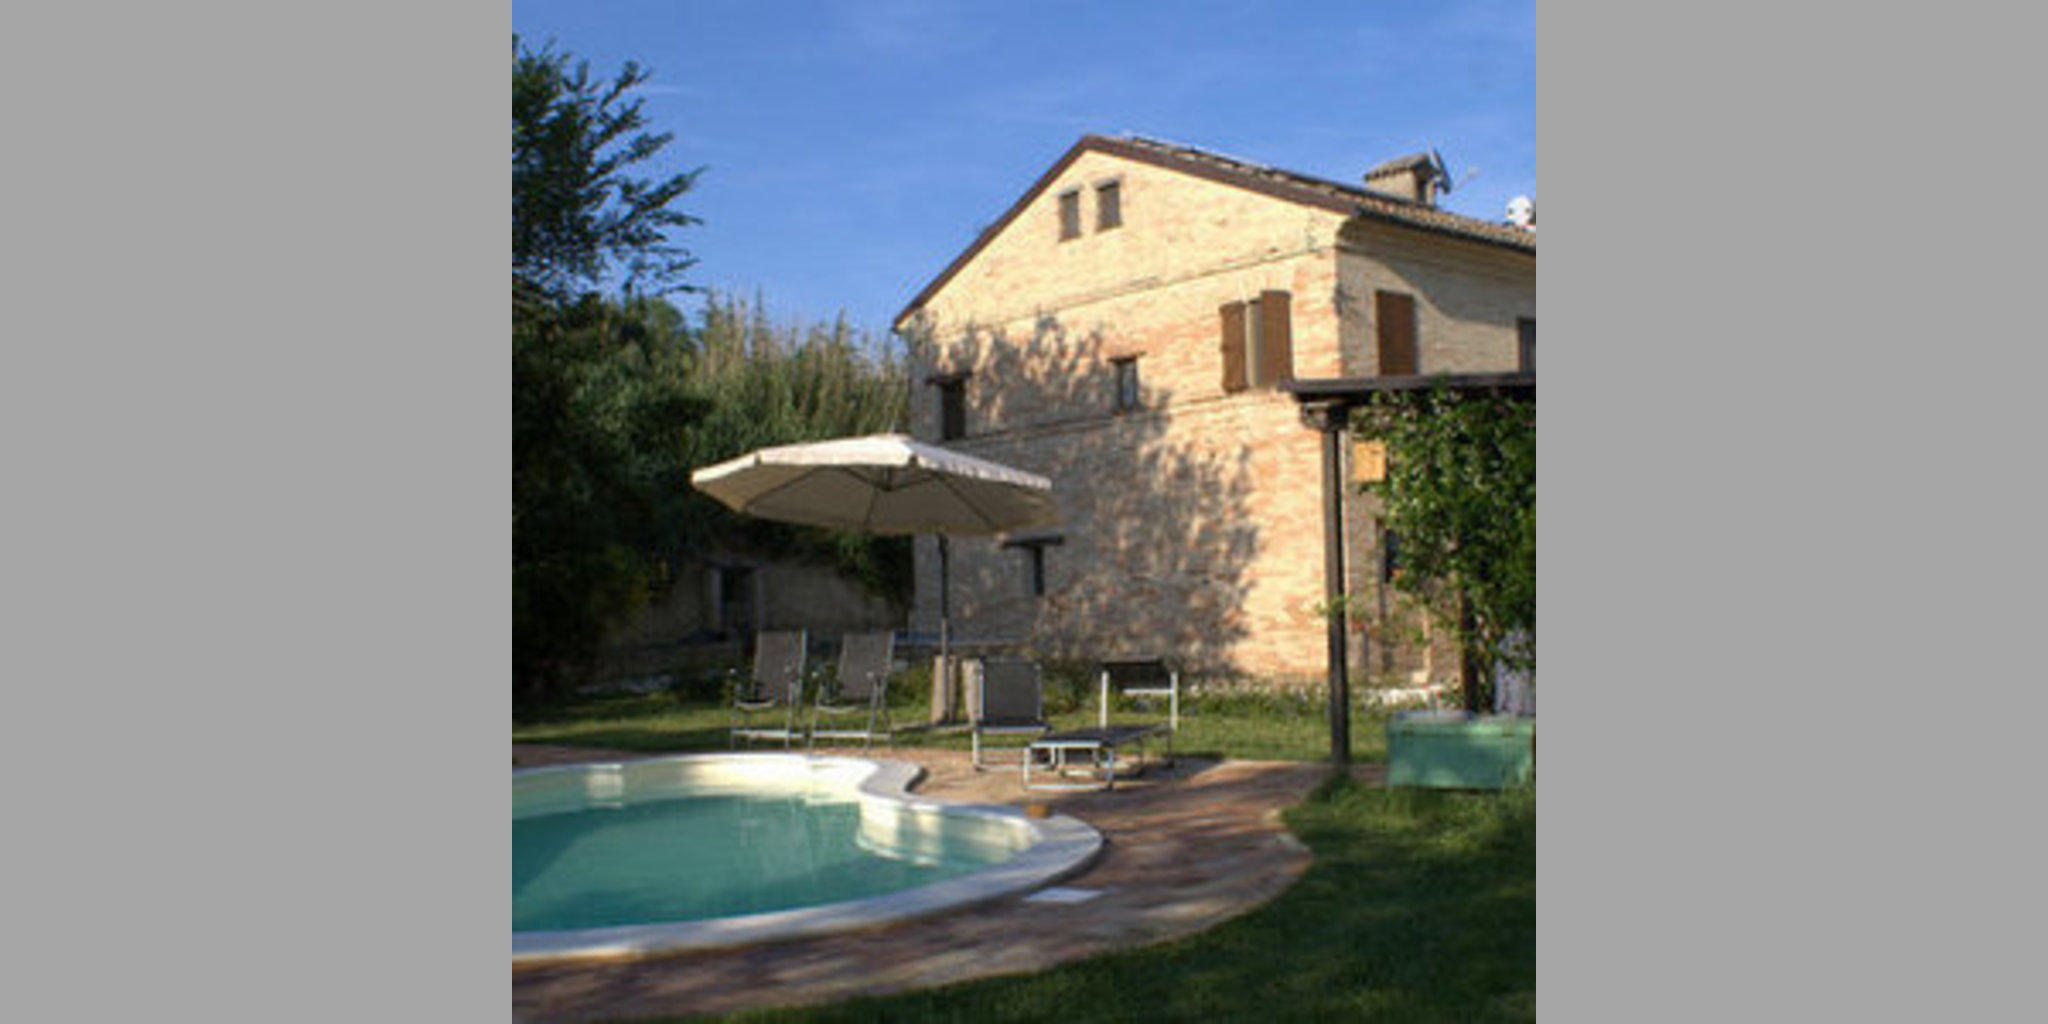 Bed & Breakfast Macerata - Macerata